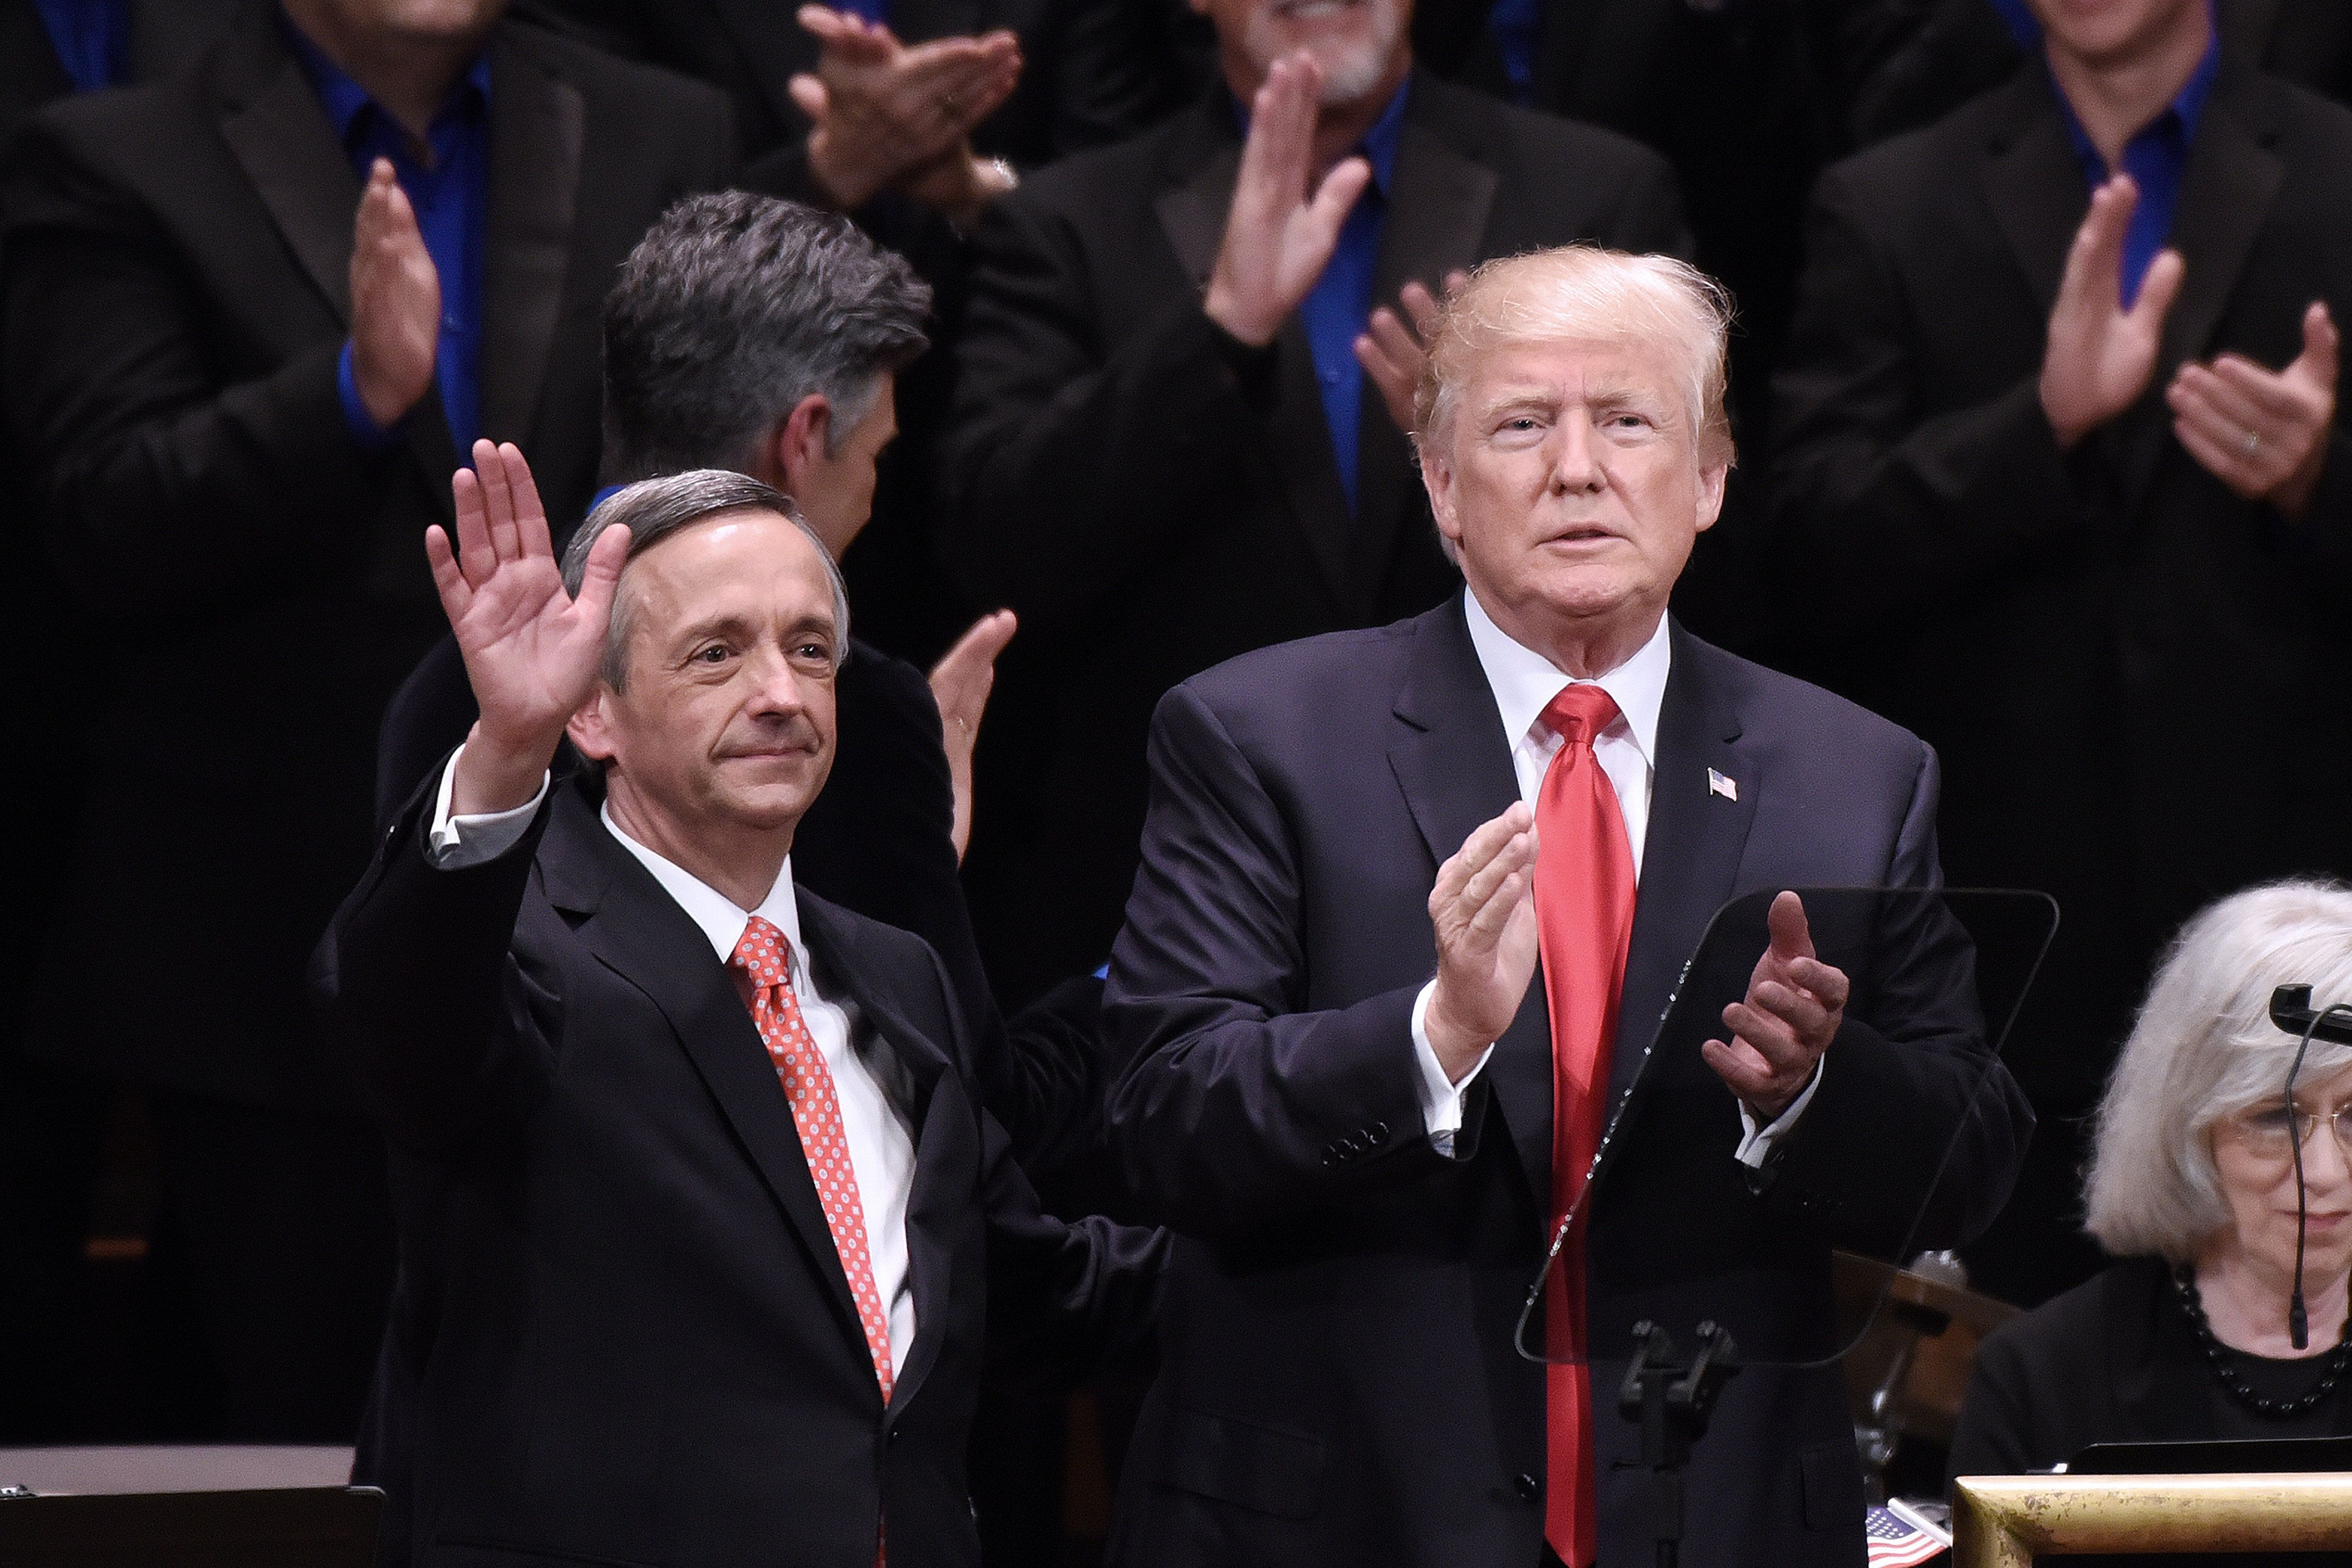 Pastor Robert Jeffress waves next to President Donald Trump at an event at the Kennedy Center in Washington, D.C., on July 1,